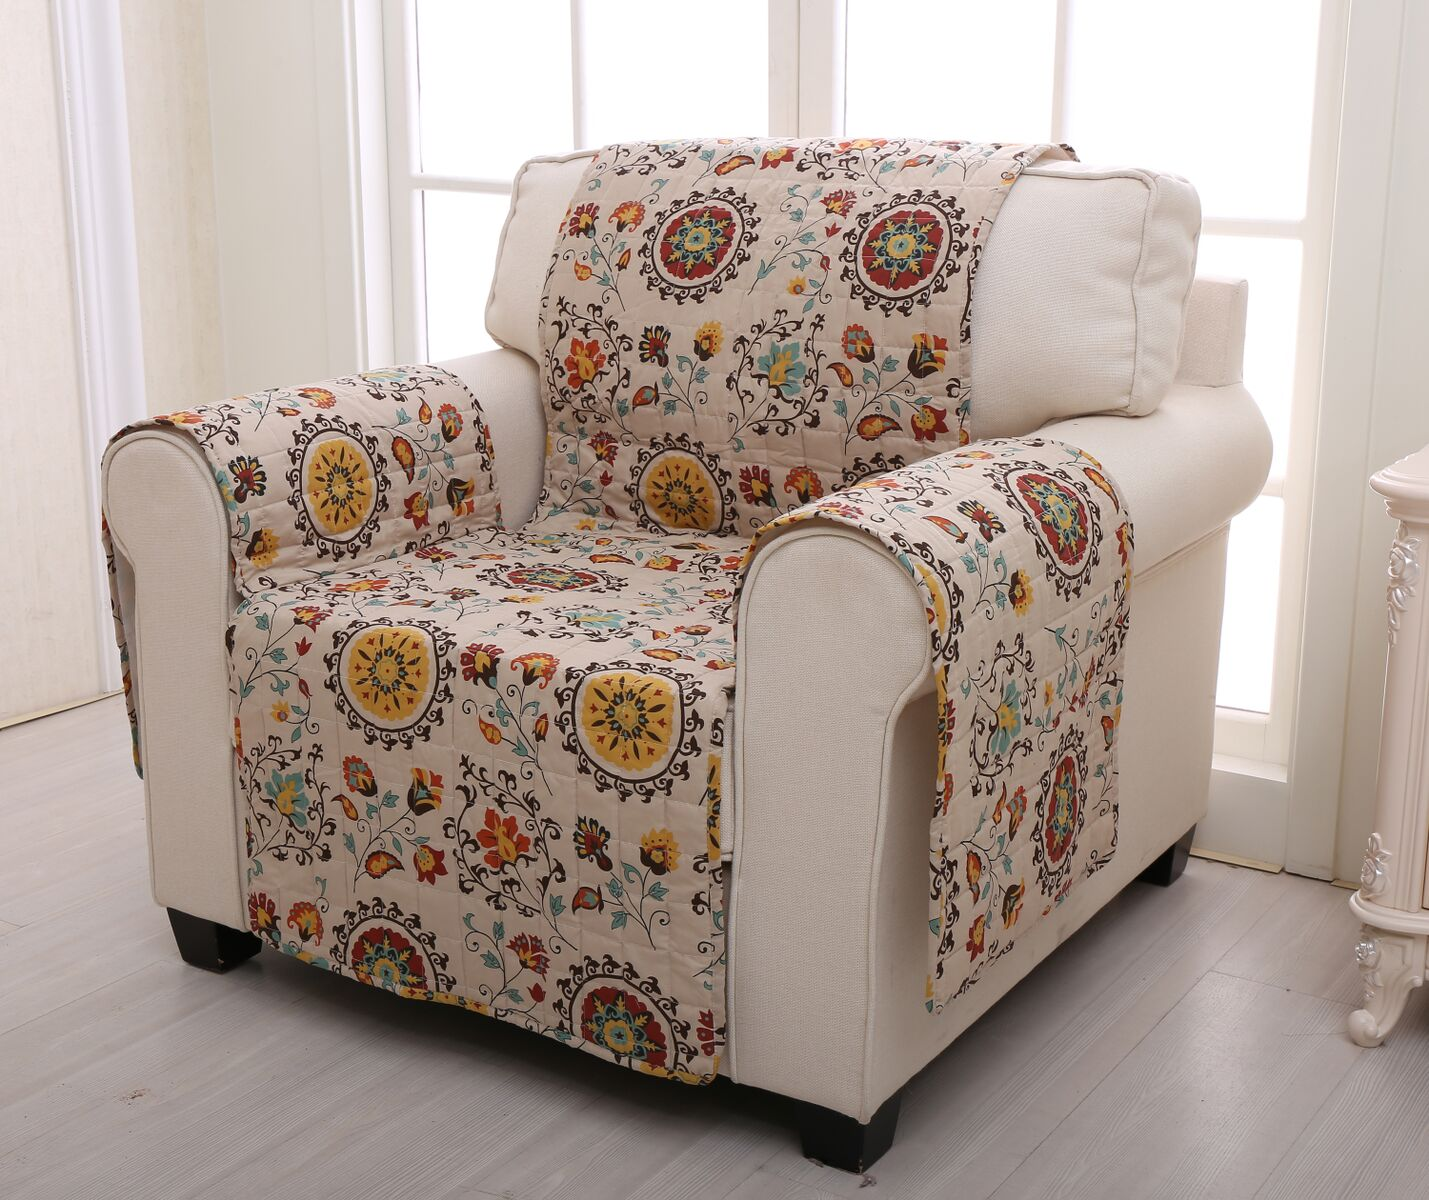 Andorra Multi Furniture Protector Arm Chair